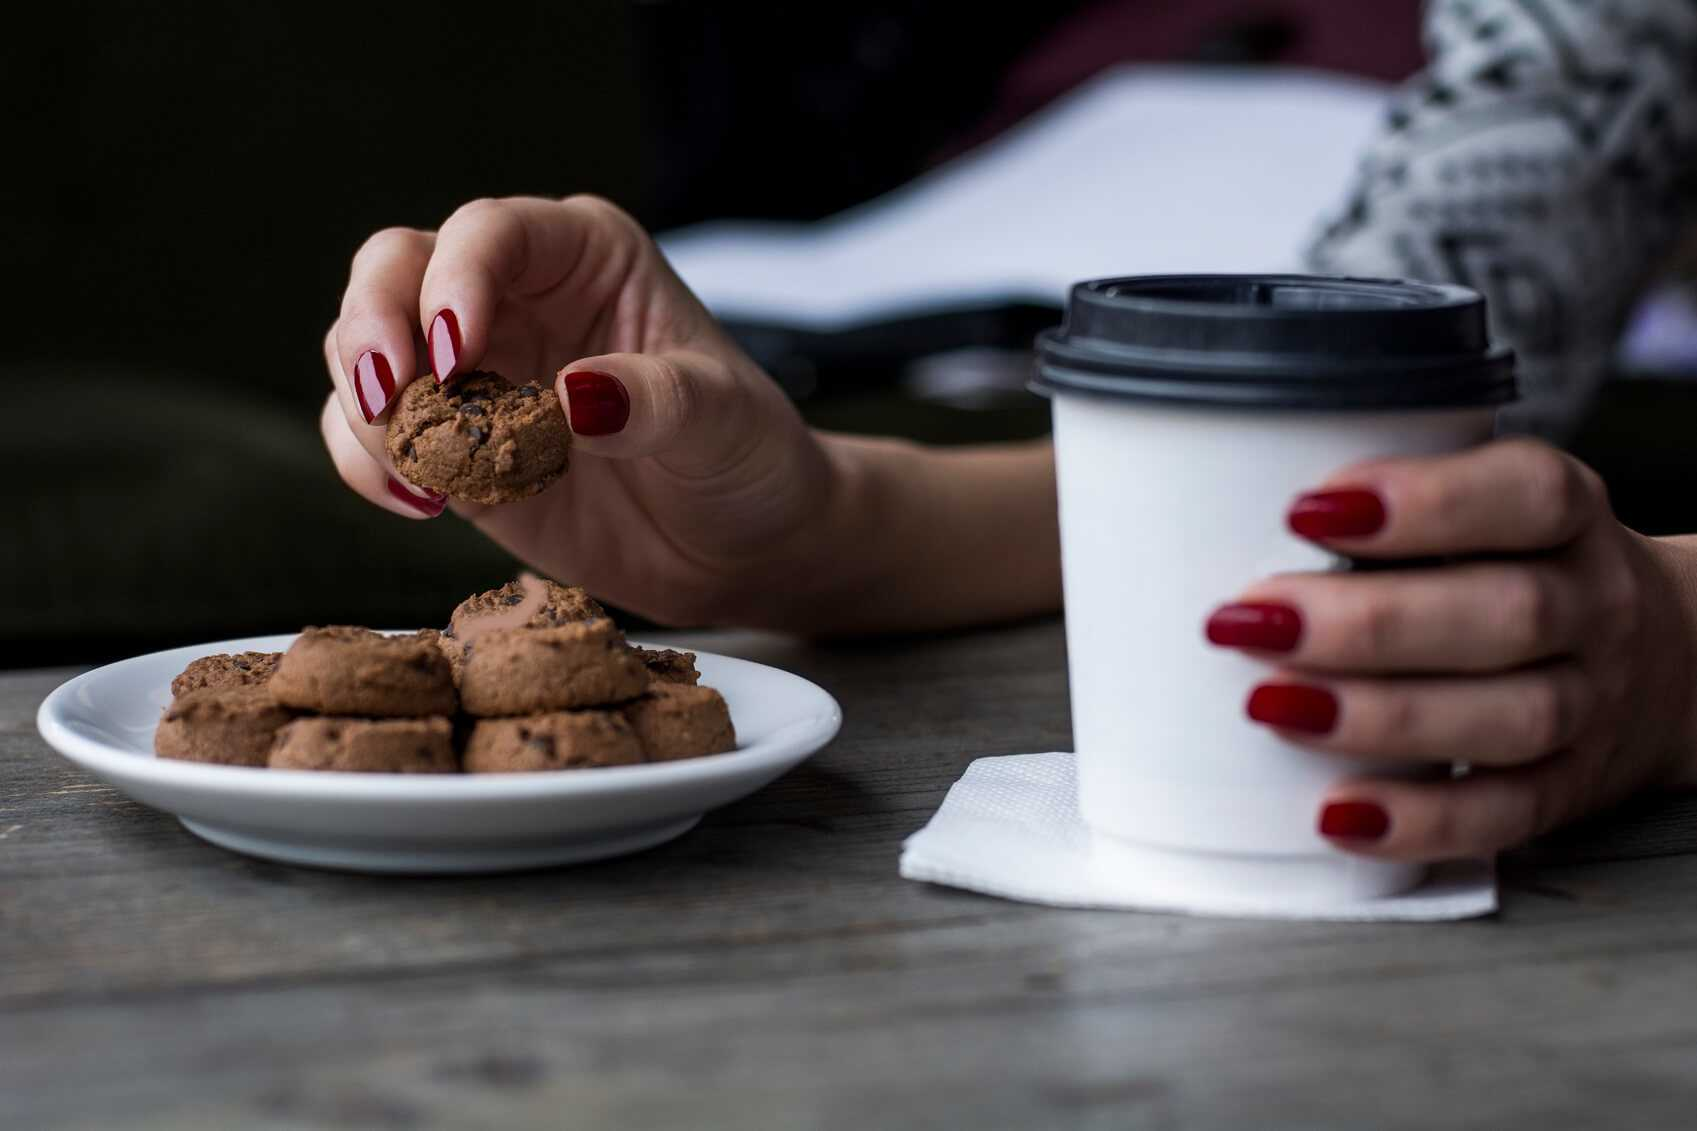 Woman's hand picking chocolate chip cookie